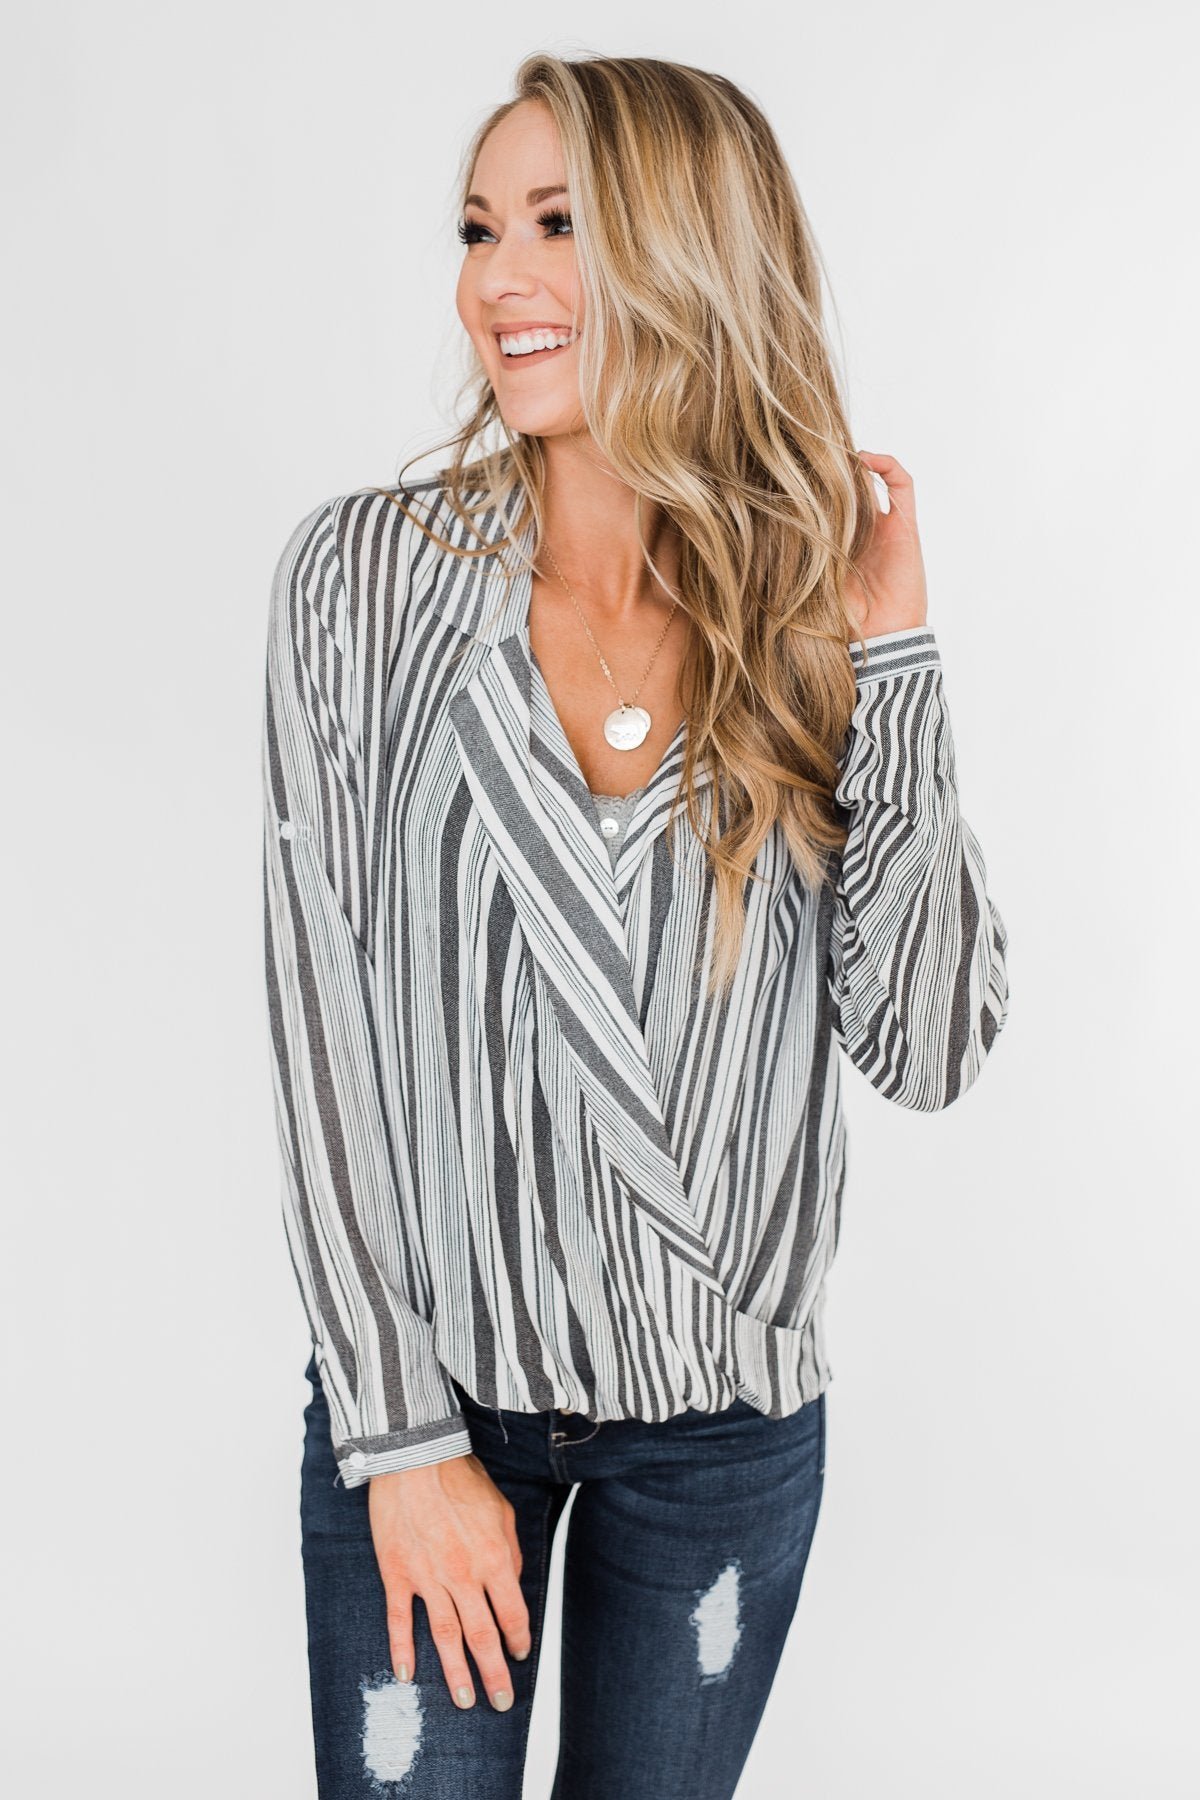 When You're Around Long Sleeve Striped Top- Charcoal & Ivory